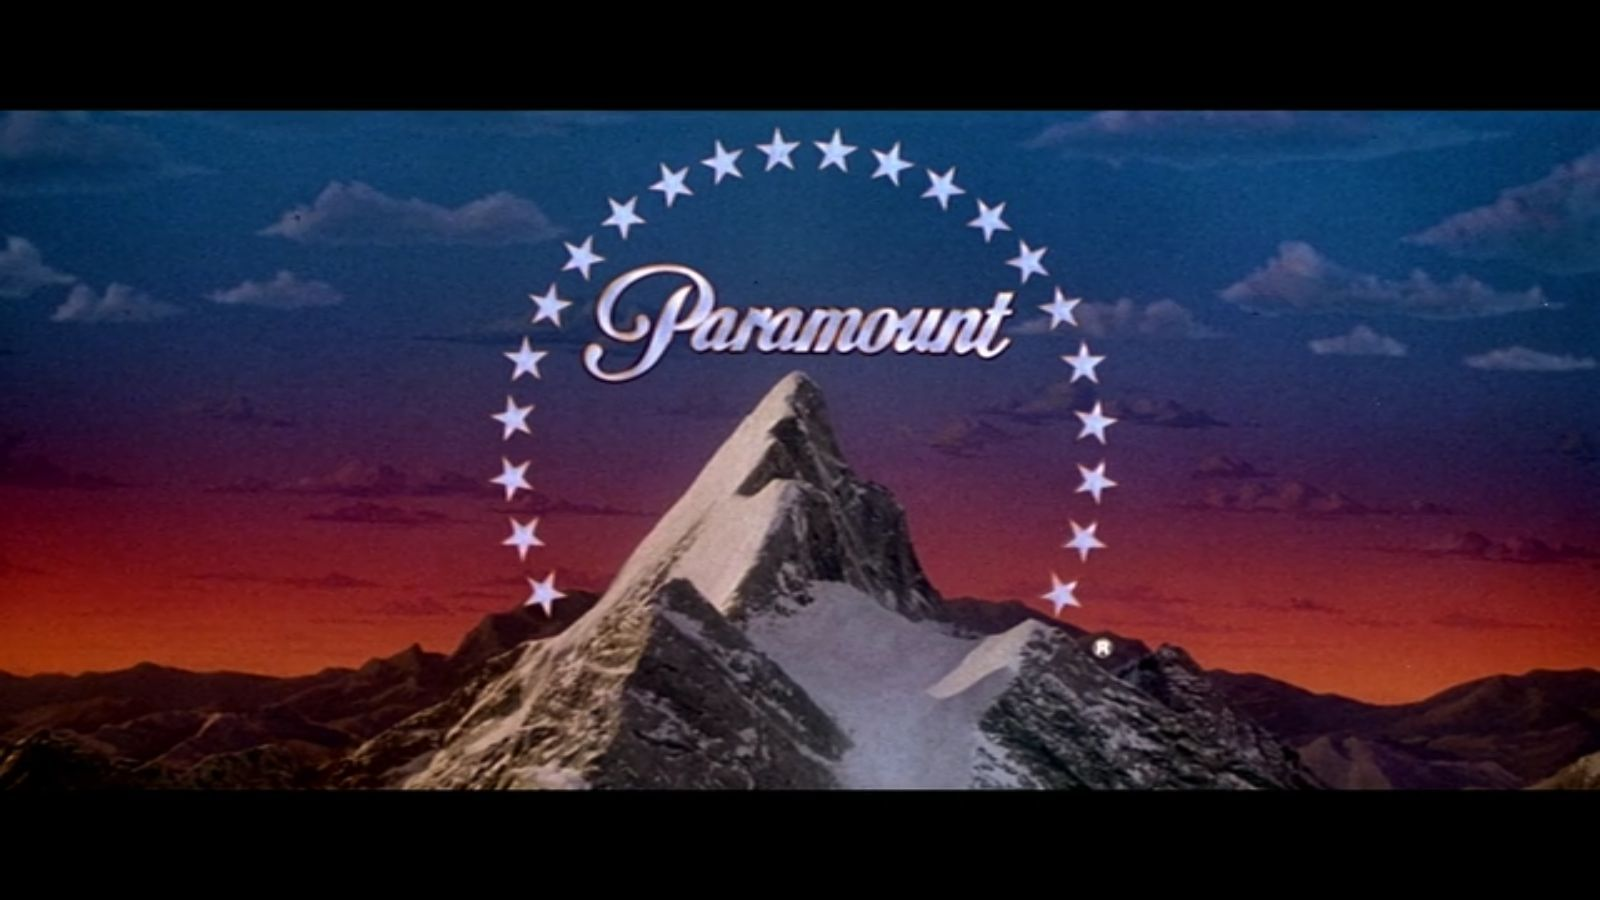 paramount logo history images reverse search